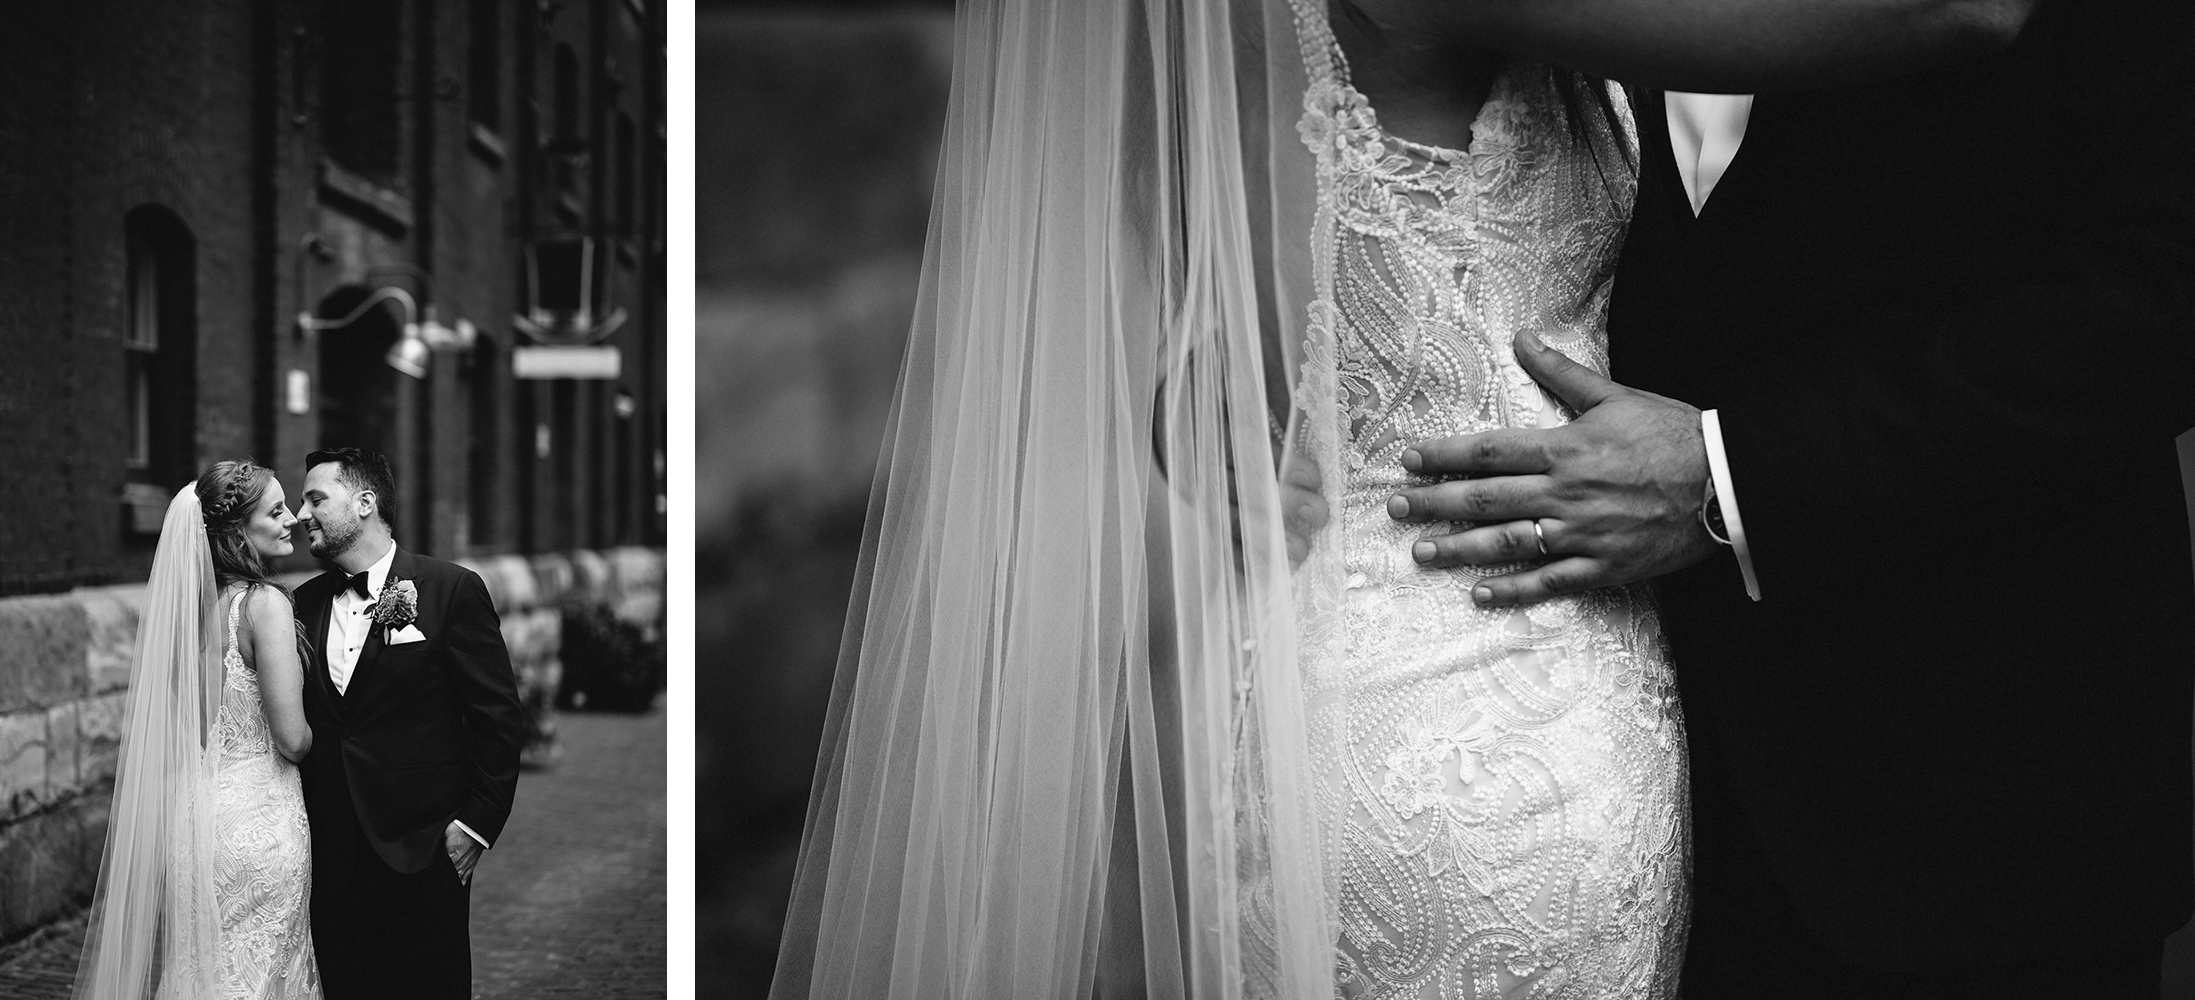 31-torontos-best-documentary-wedding-photographers-ryanne-hollies-photography-photojournalism-artistic-moody-toronto-airship37-distillery-district-groom-and-bride-poratraits-intimate-authentic-film-analog-photography-artistic-moody-editorial.jpg